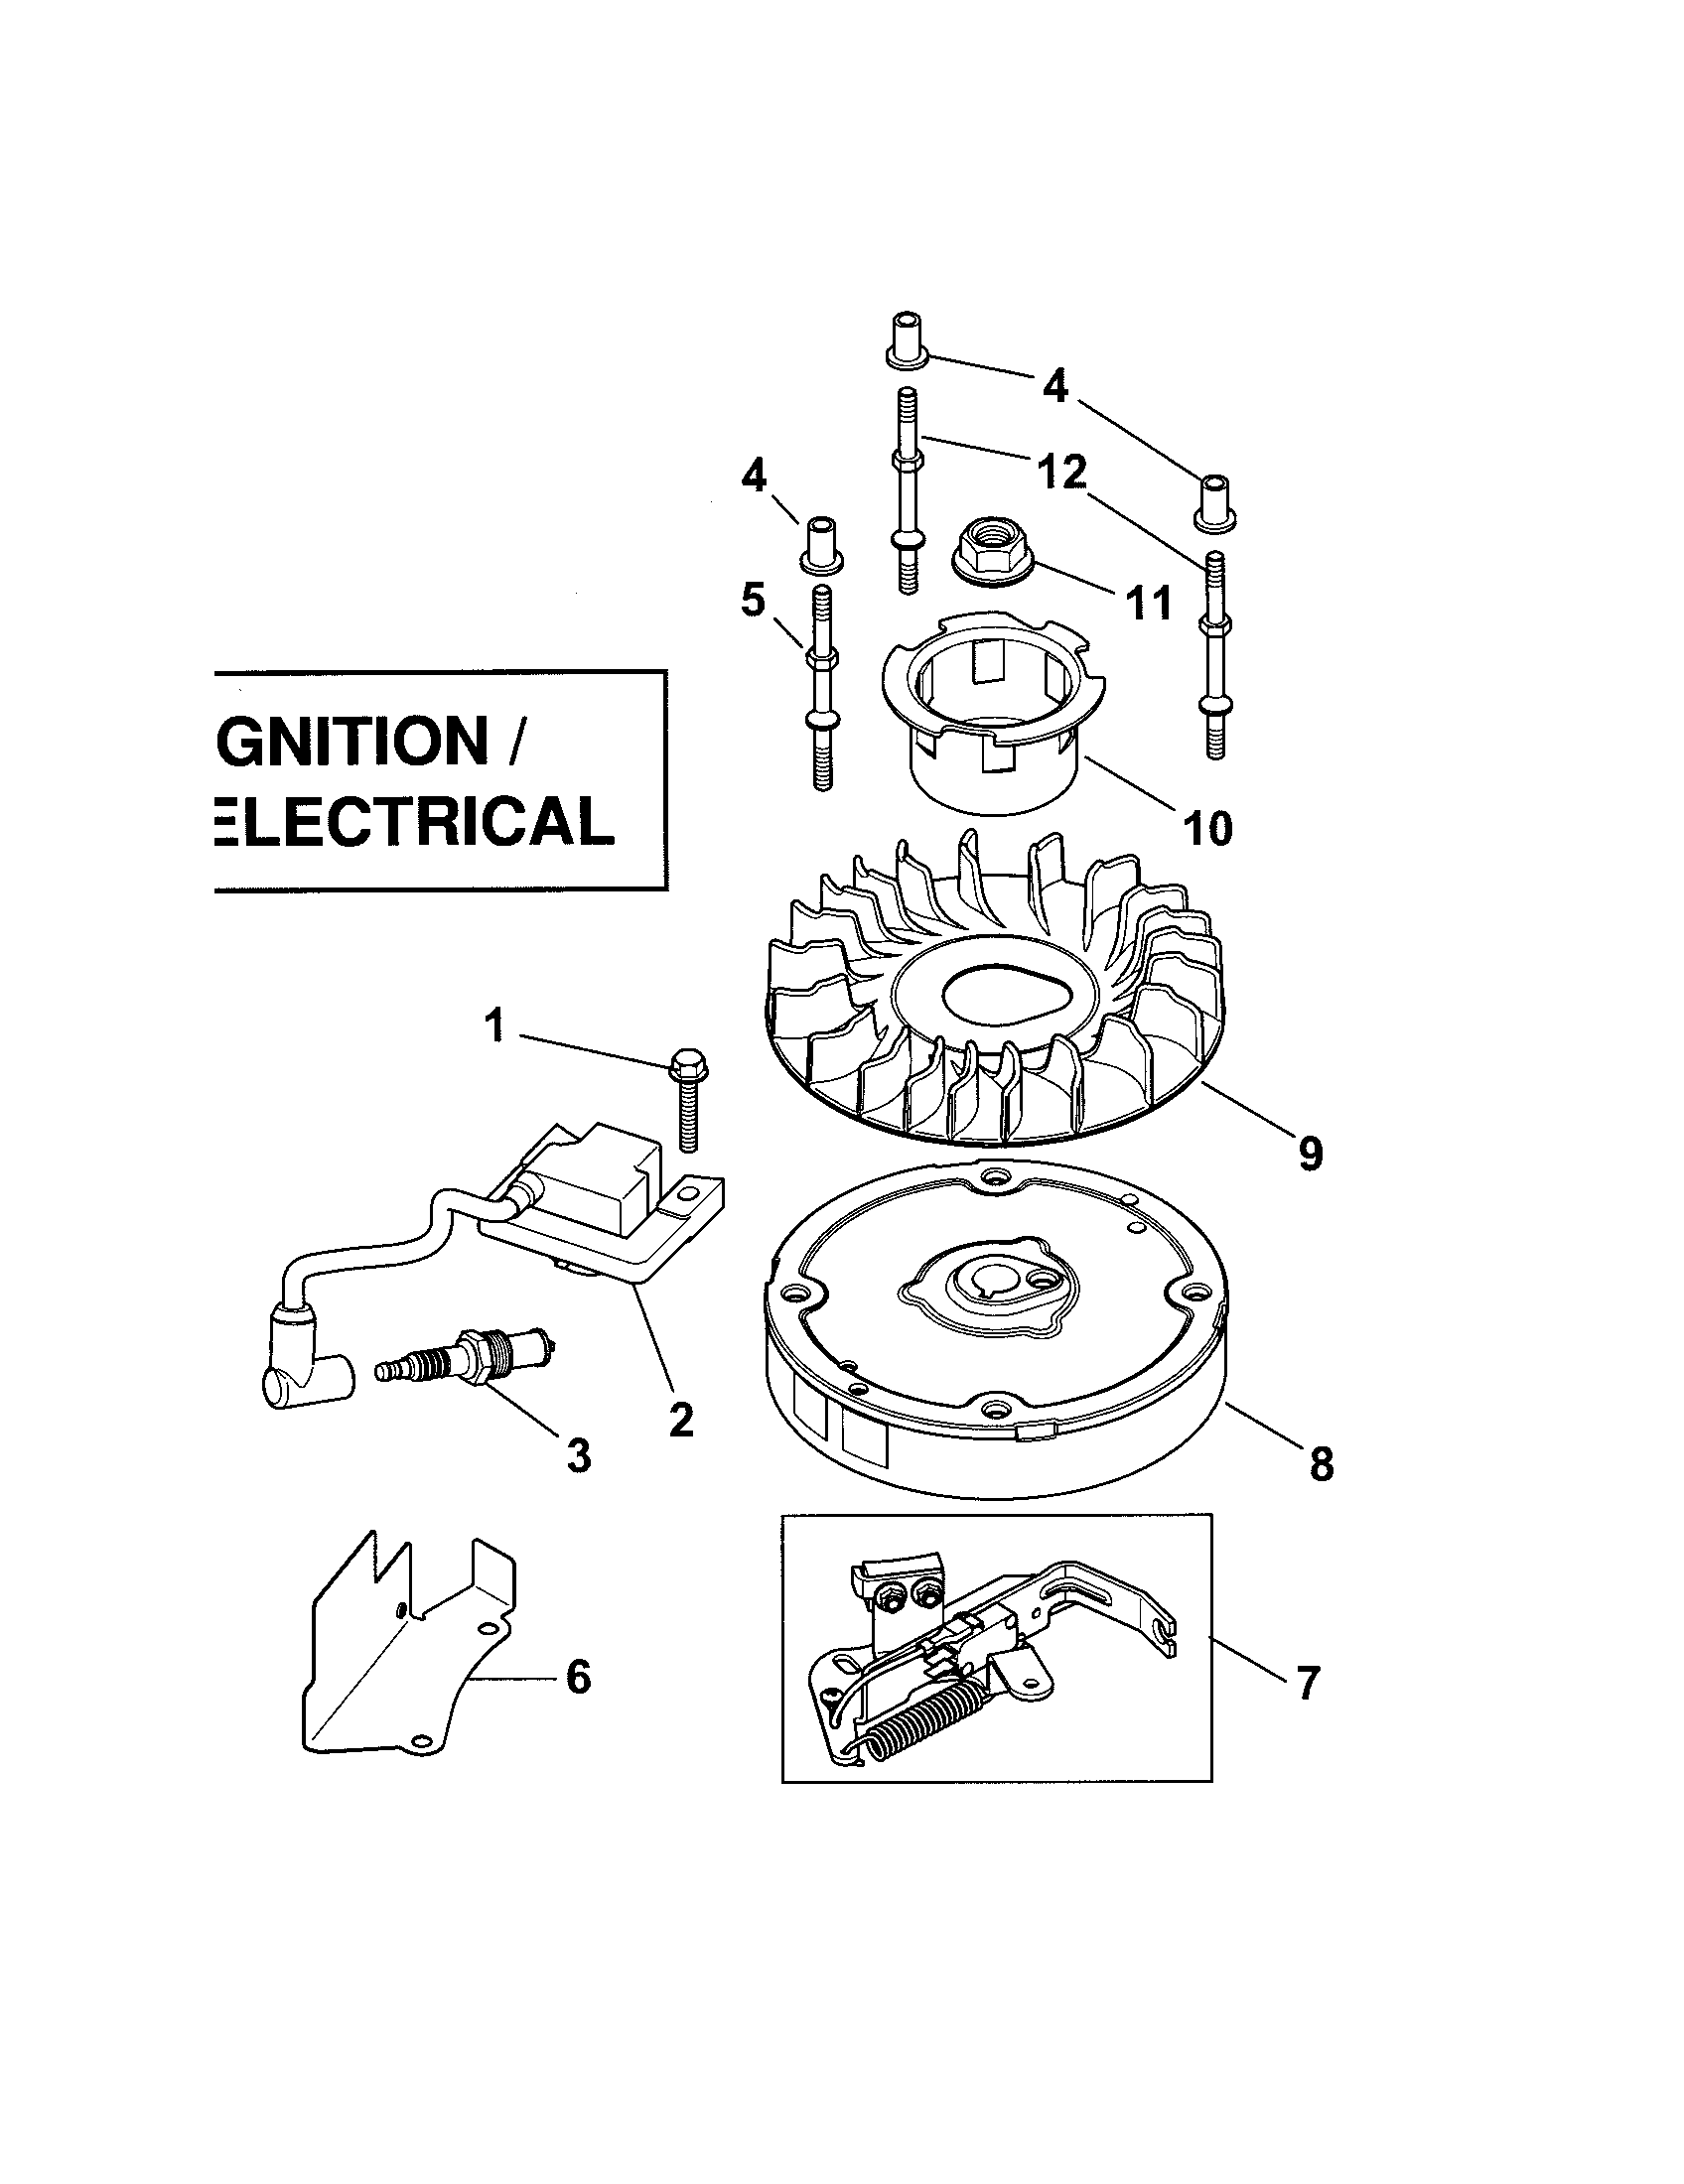 Kohler Xt 7 Engine Electrical Diagram